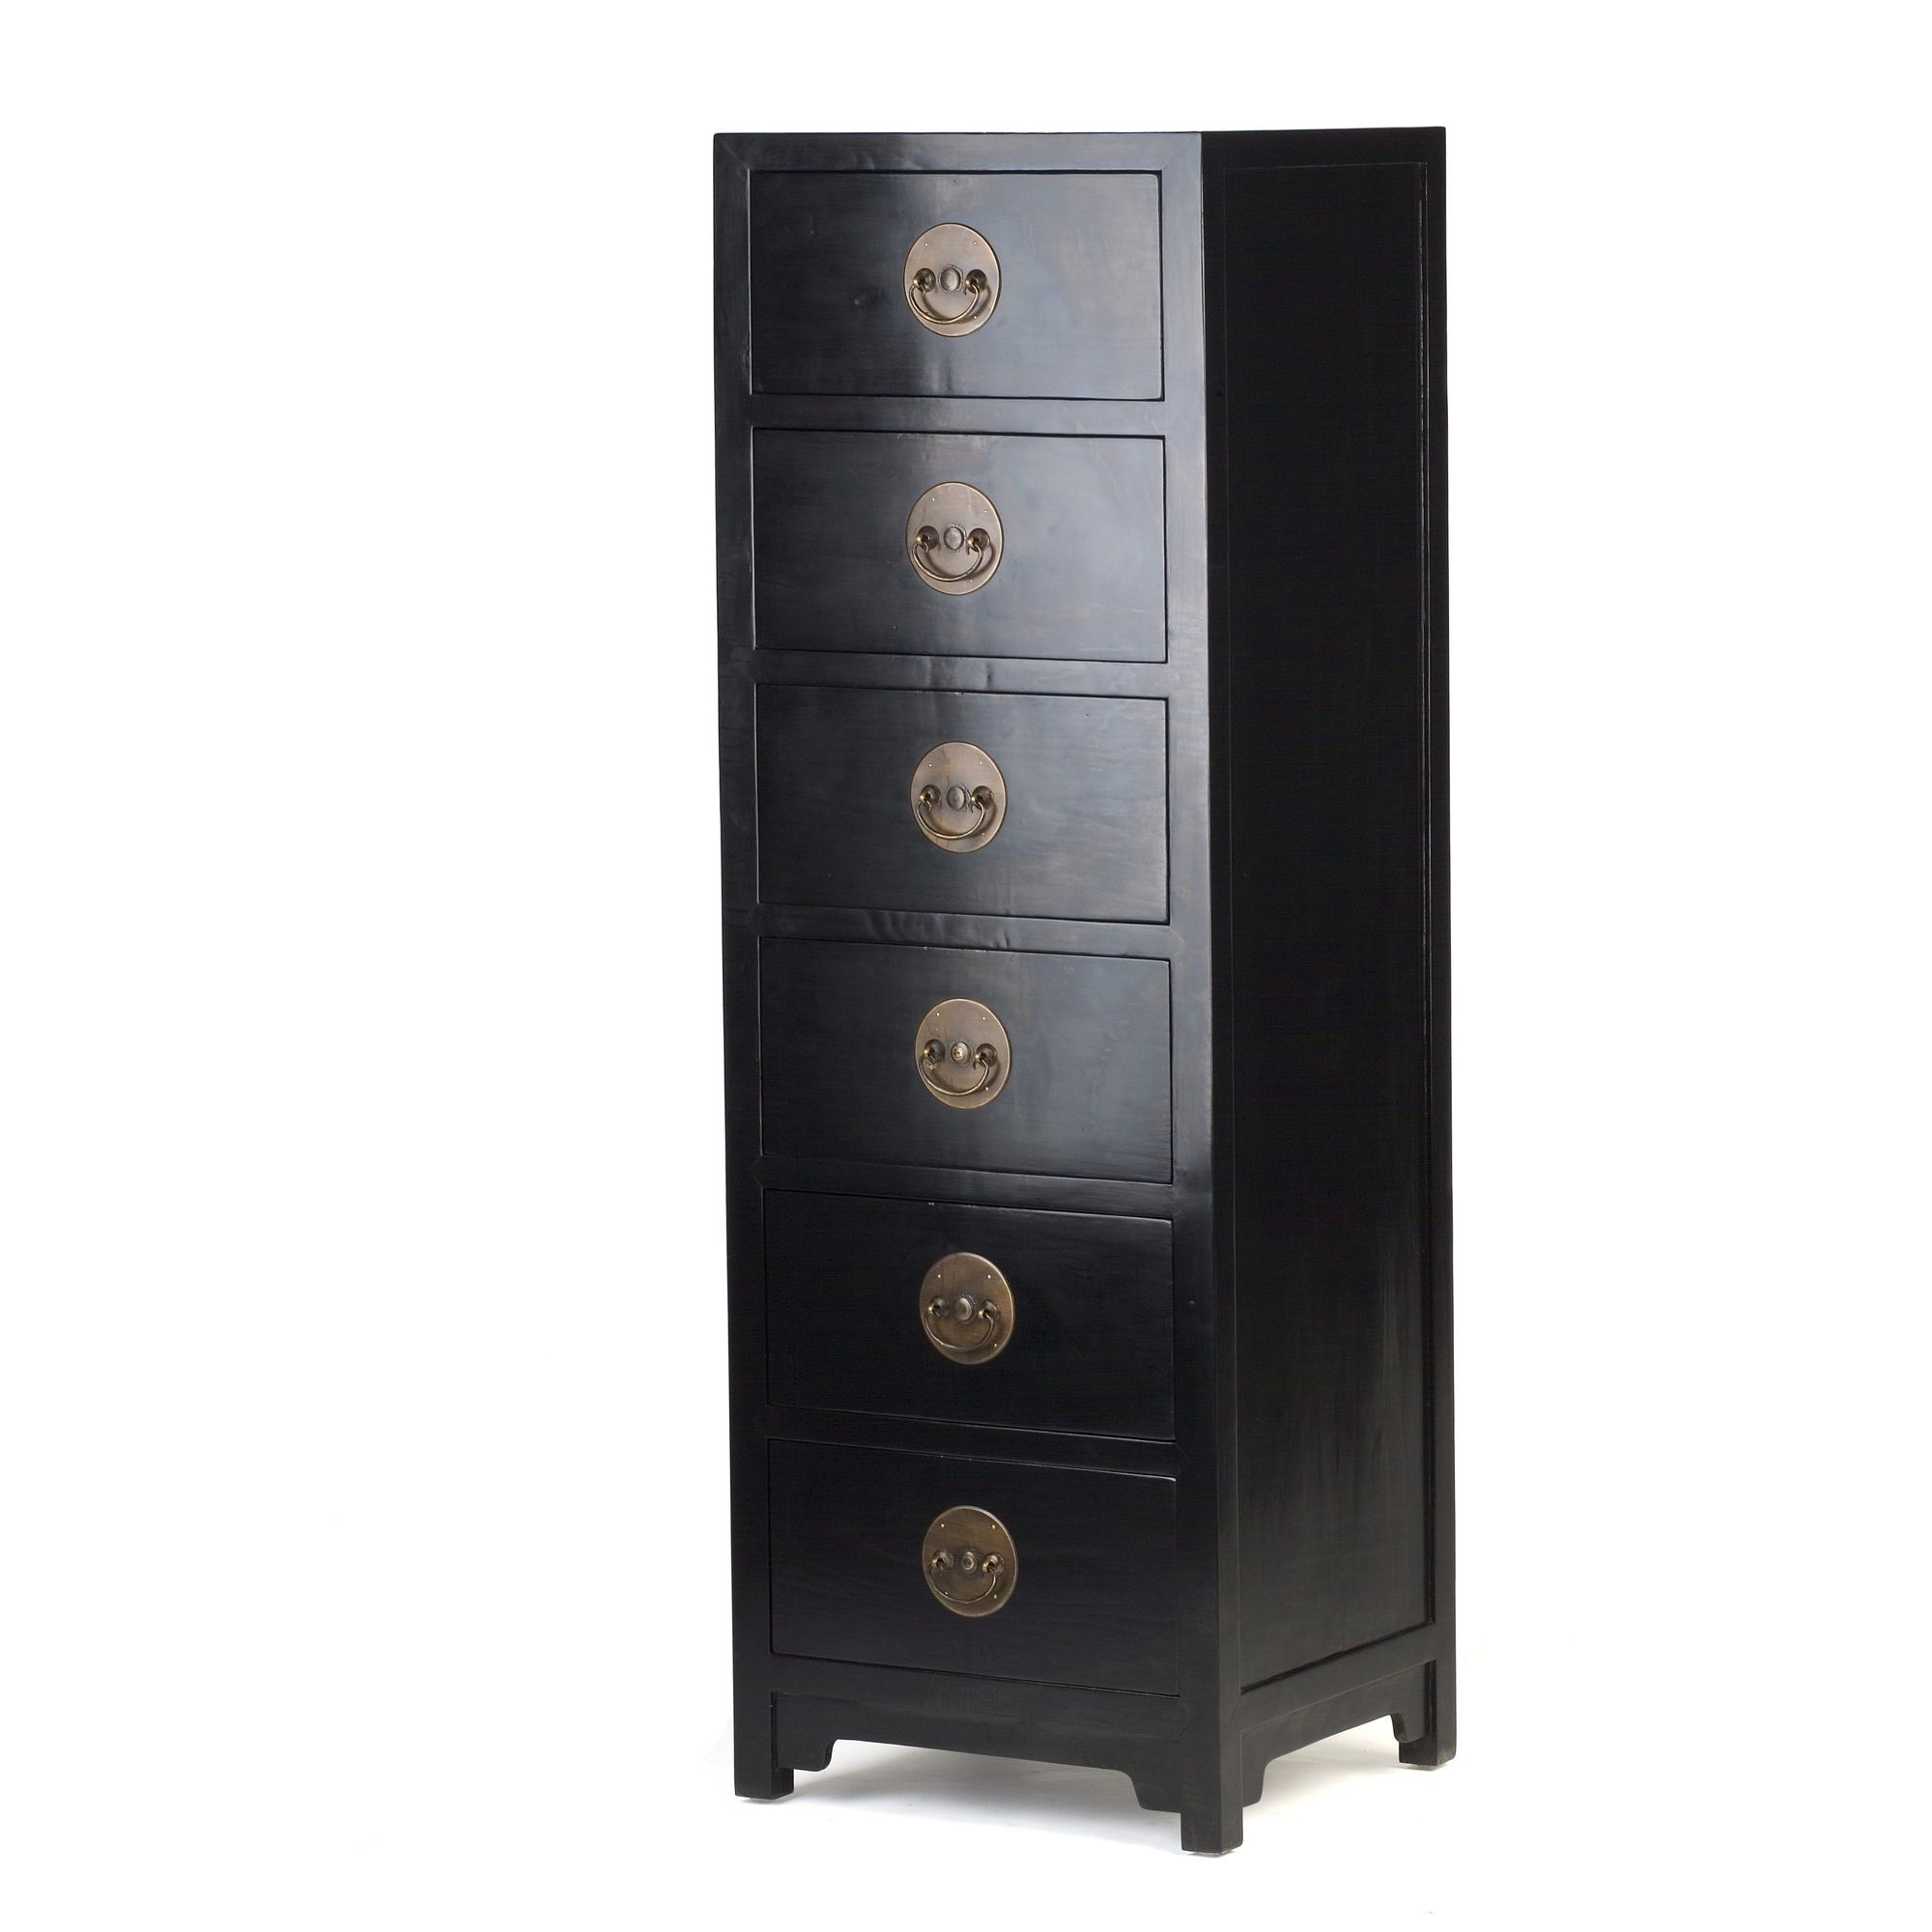 Shimu Chinese Classical Ming Tall Boy Chest - Black Lacquer at Tesco Direct